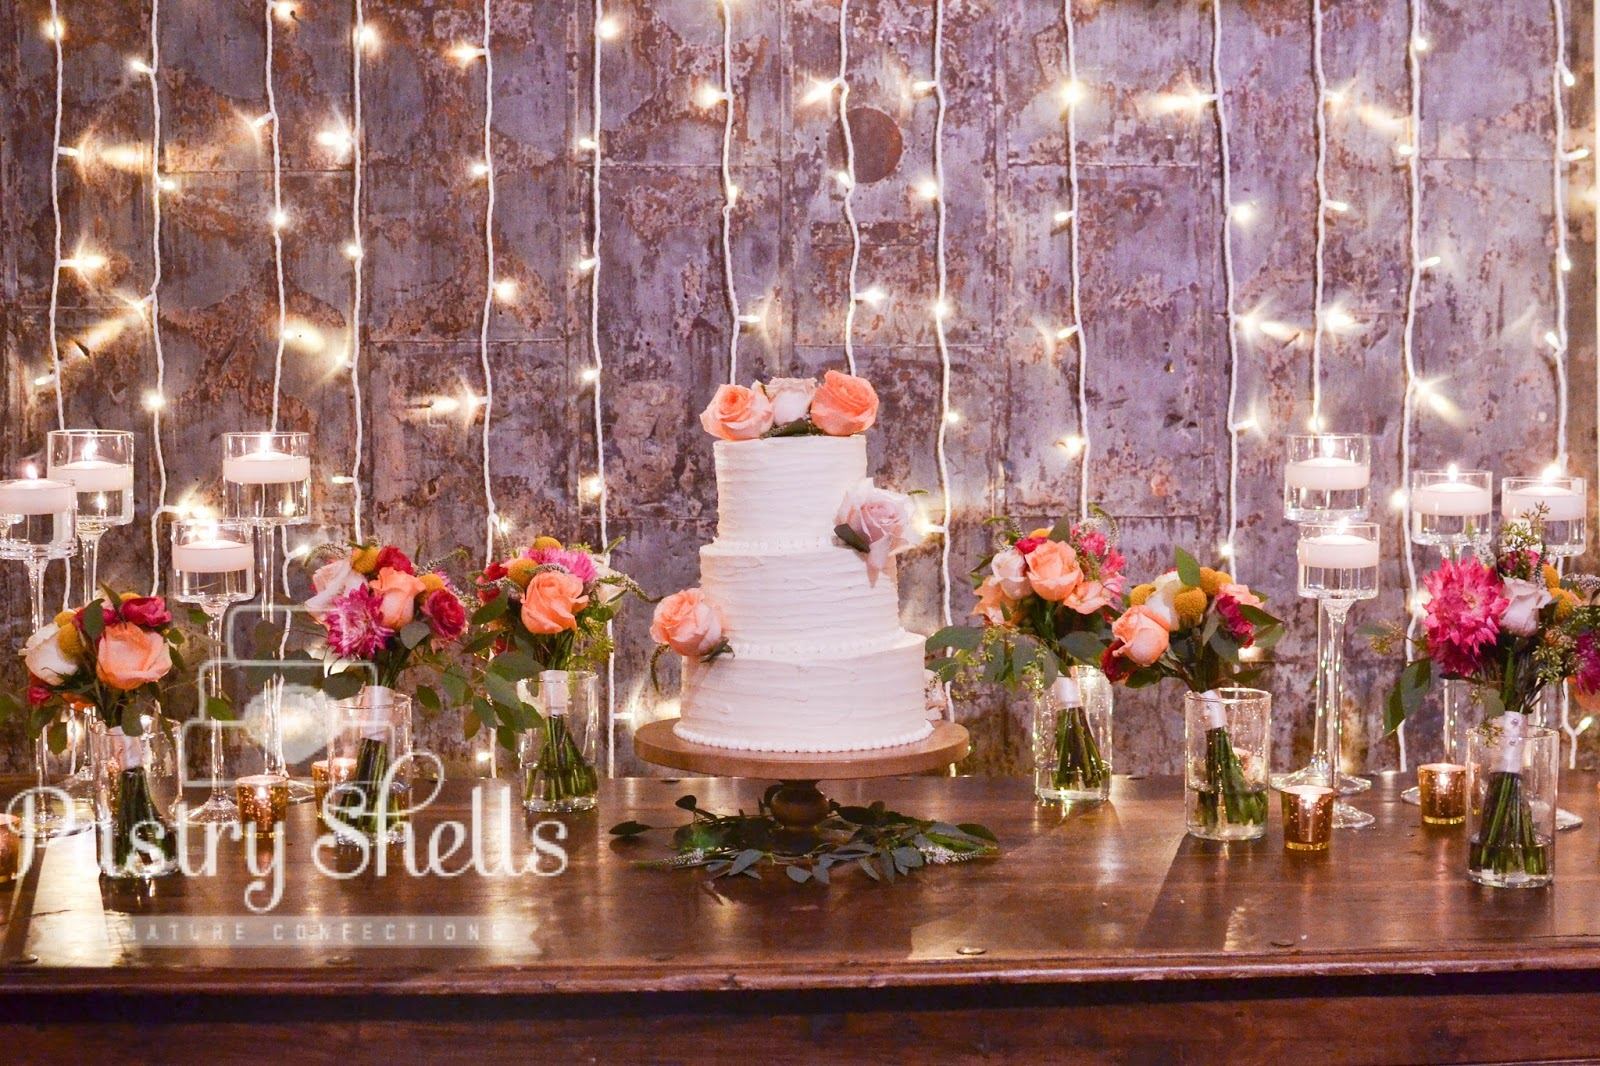 King plow arts center wedding pastry shells it was raining i was rushing to get the layers in and on my last trip it slipped my mind to actually close the trunk door while i spent 30 minutes setting junglespirit Choice Image